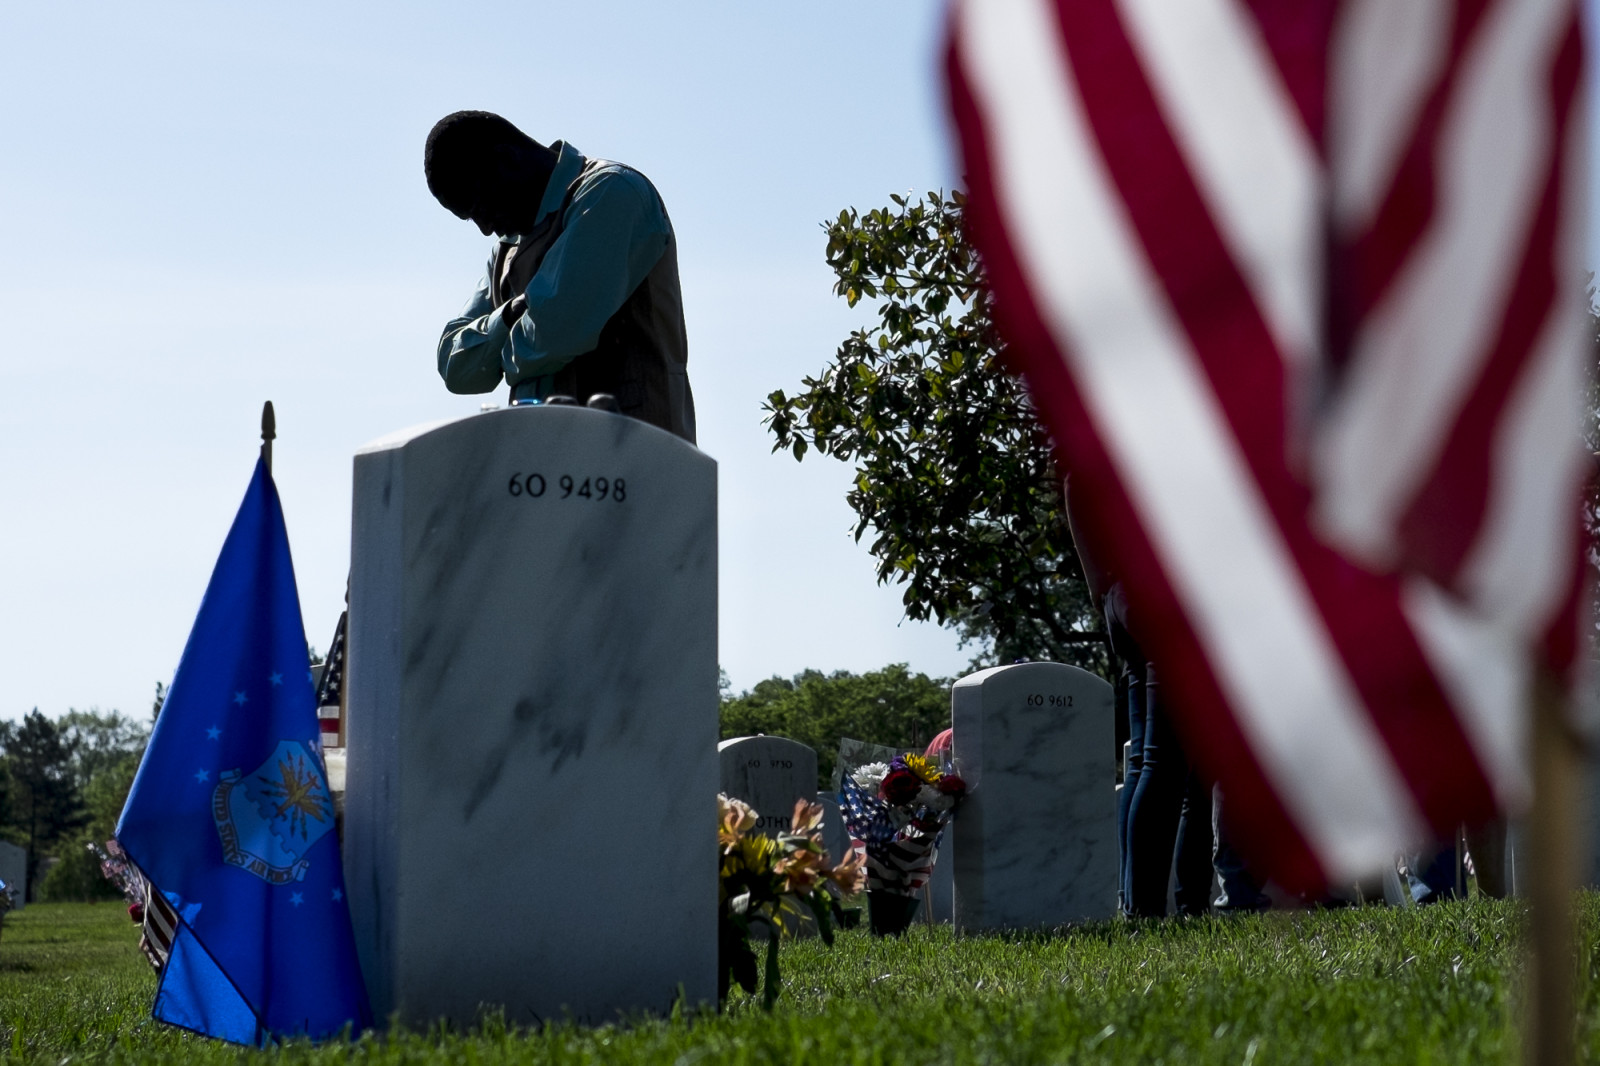 On Memorial Day, Peter Warigi, 40, of Kenya, visits the grave of his brother SSGT Anthony Warigi USA at Arlington National Cemetery in Arlington, Virginia, USA, on 25 May 2015. (Pete Marovich/ European PressPhoto Agency)